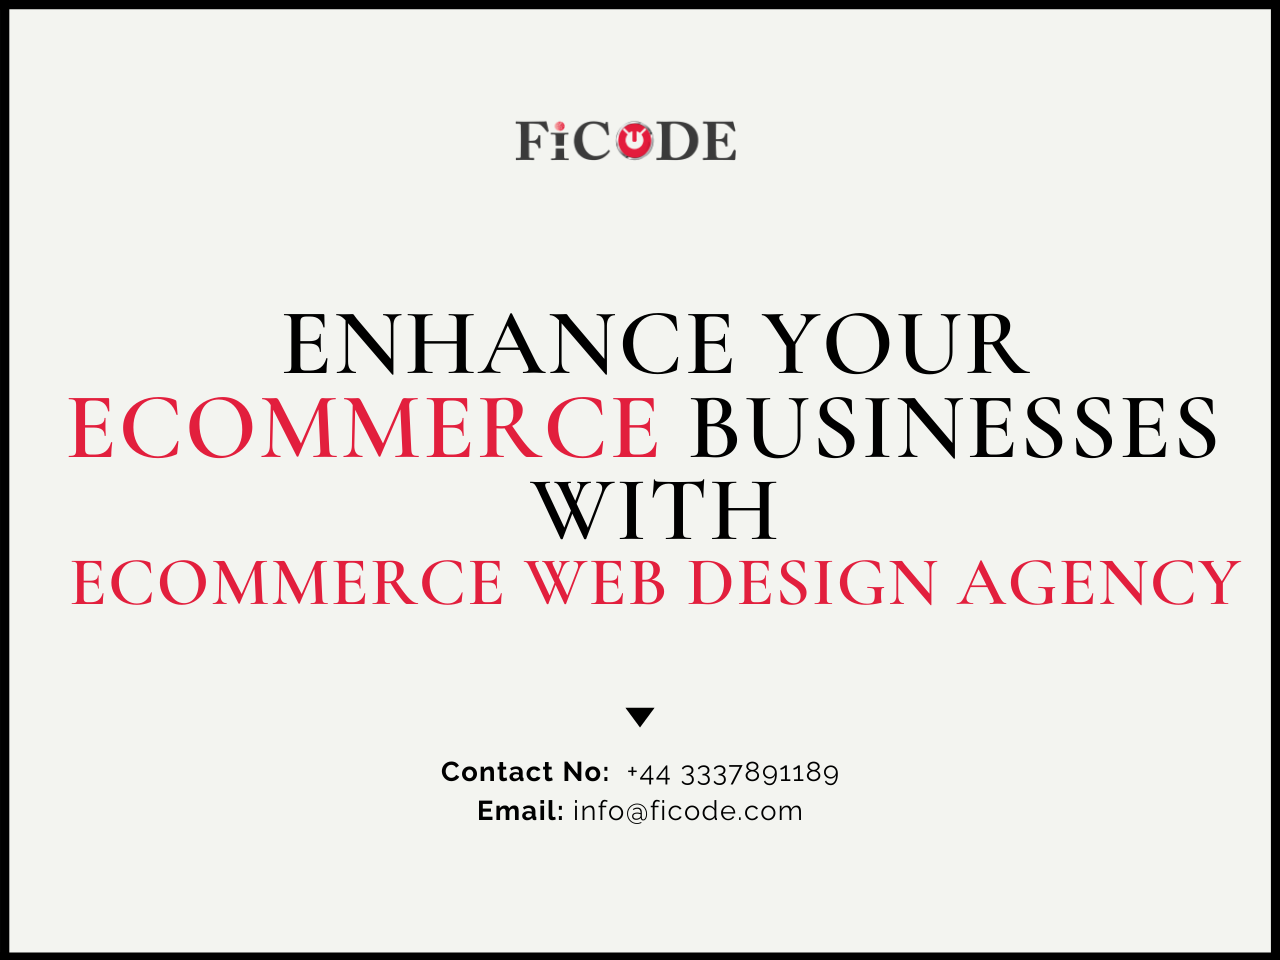 Enhance Ecommerce Businesses with Ficode, an Ecommerce Web Design Agency